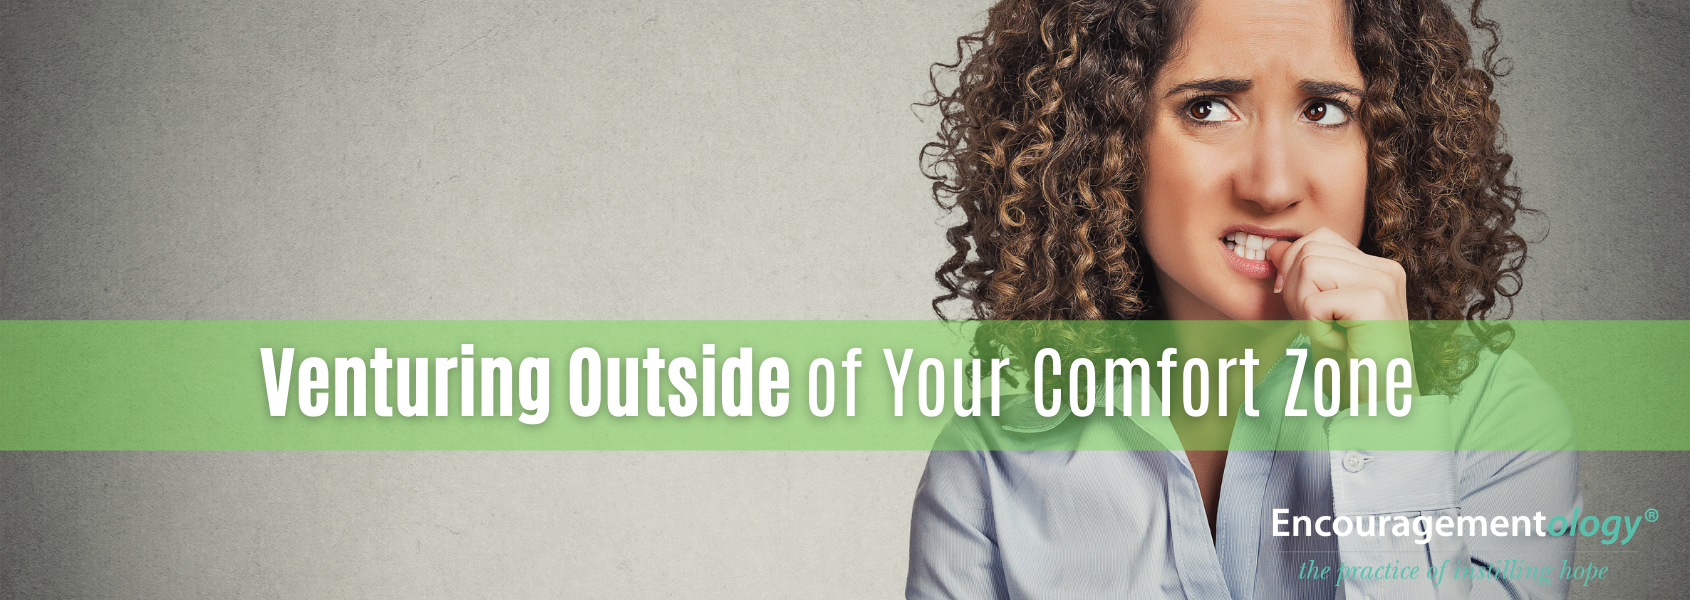 Venturing Outside of Your Comfort Zone